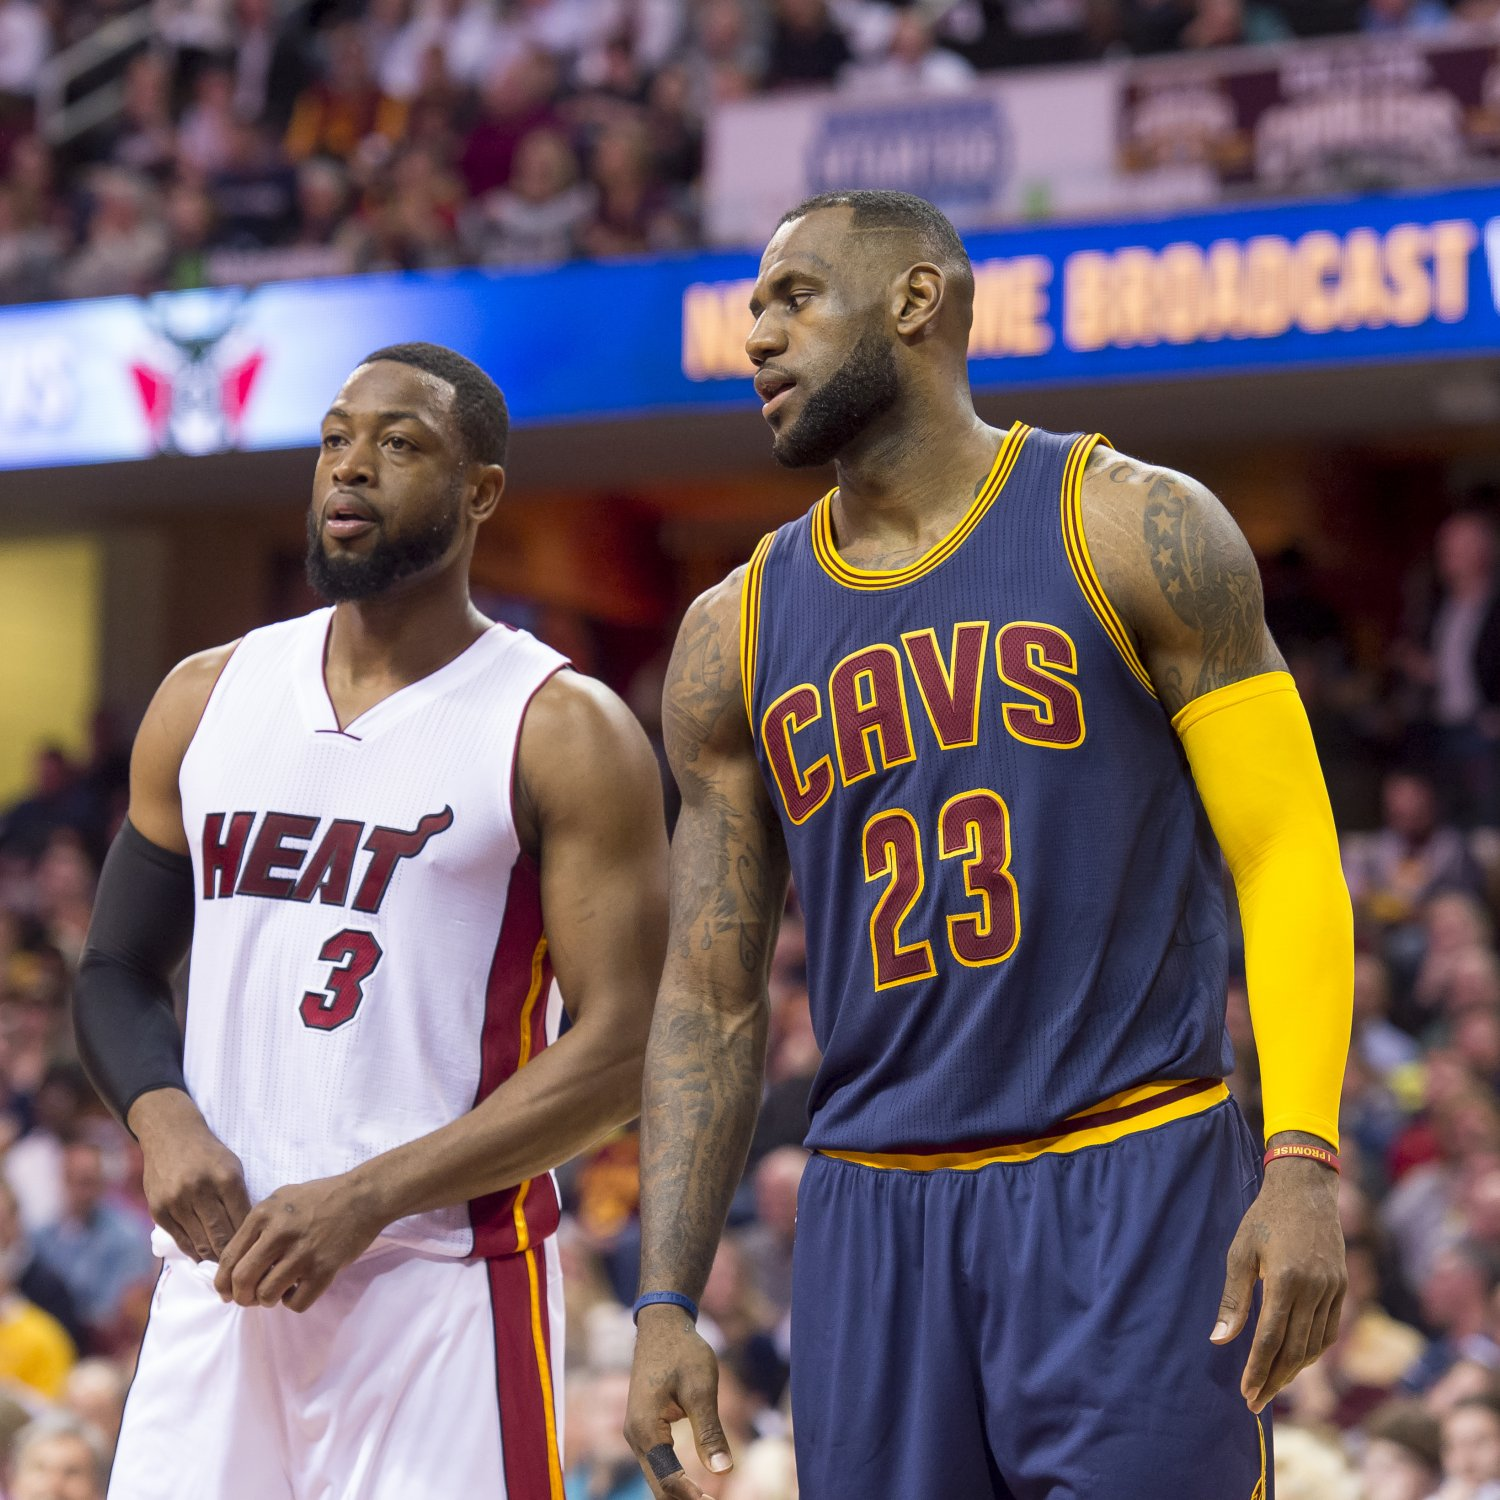 Dwyane Wade Workout: LeBron James Responds To Criticism Of Workouts With Dwyane